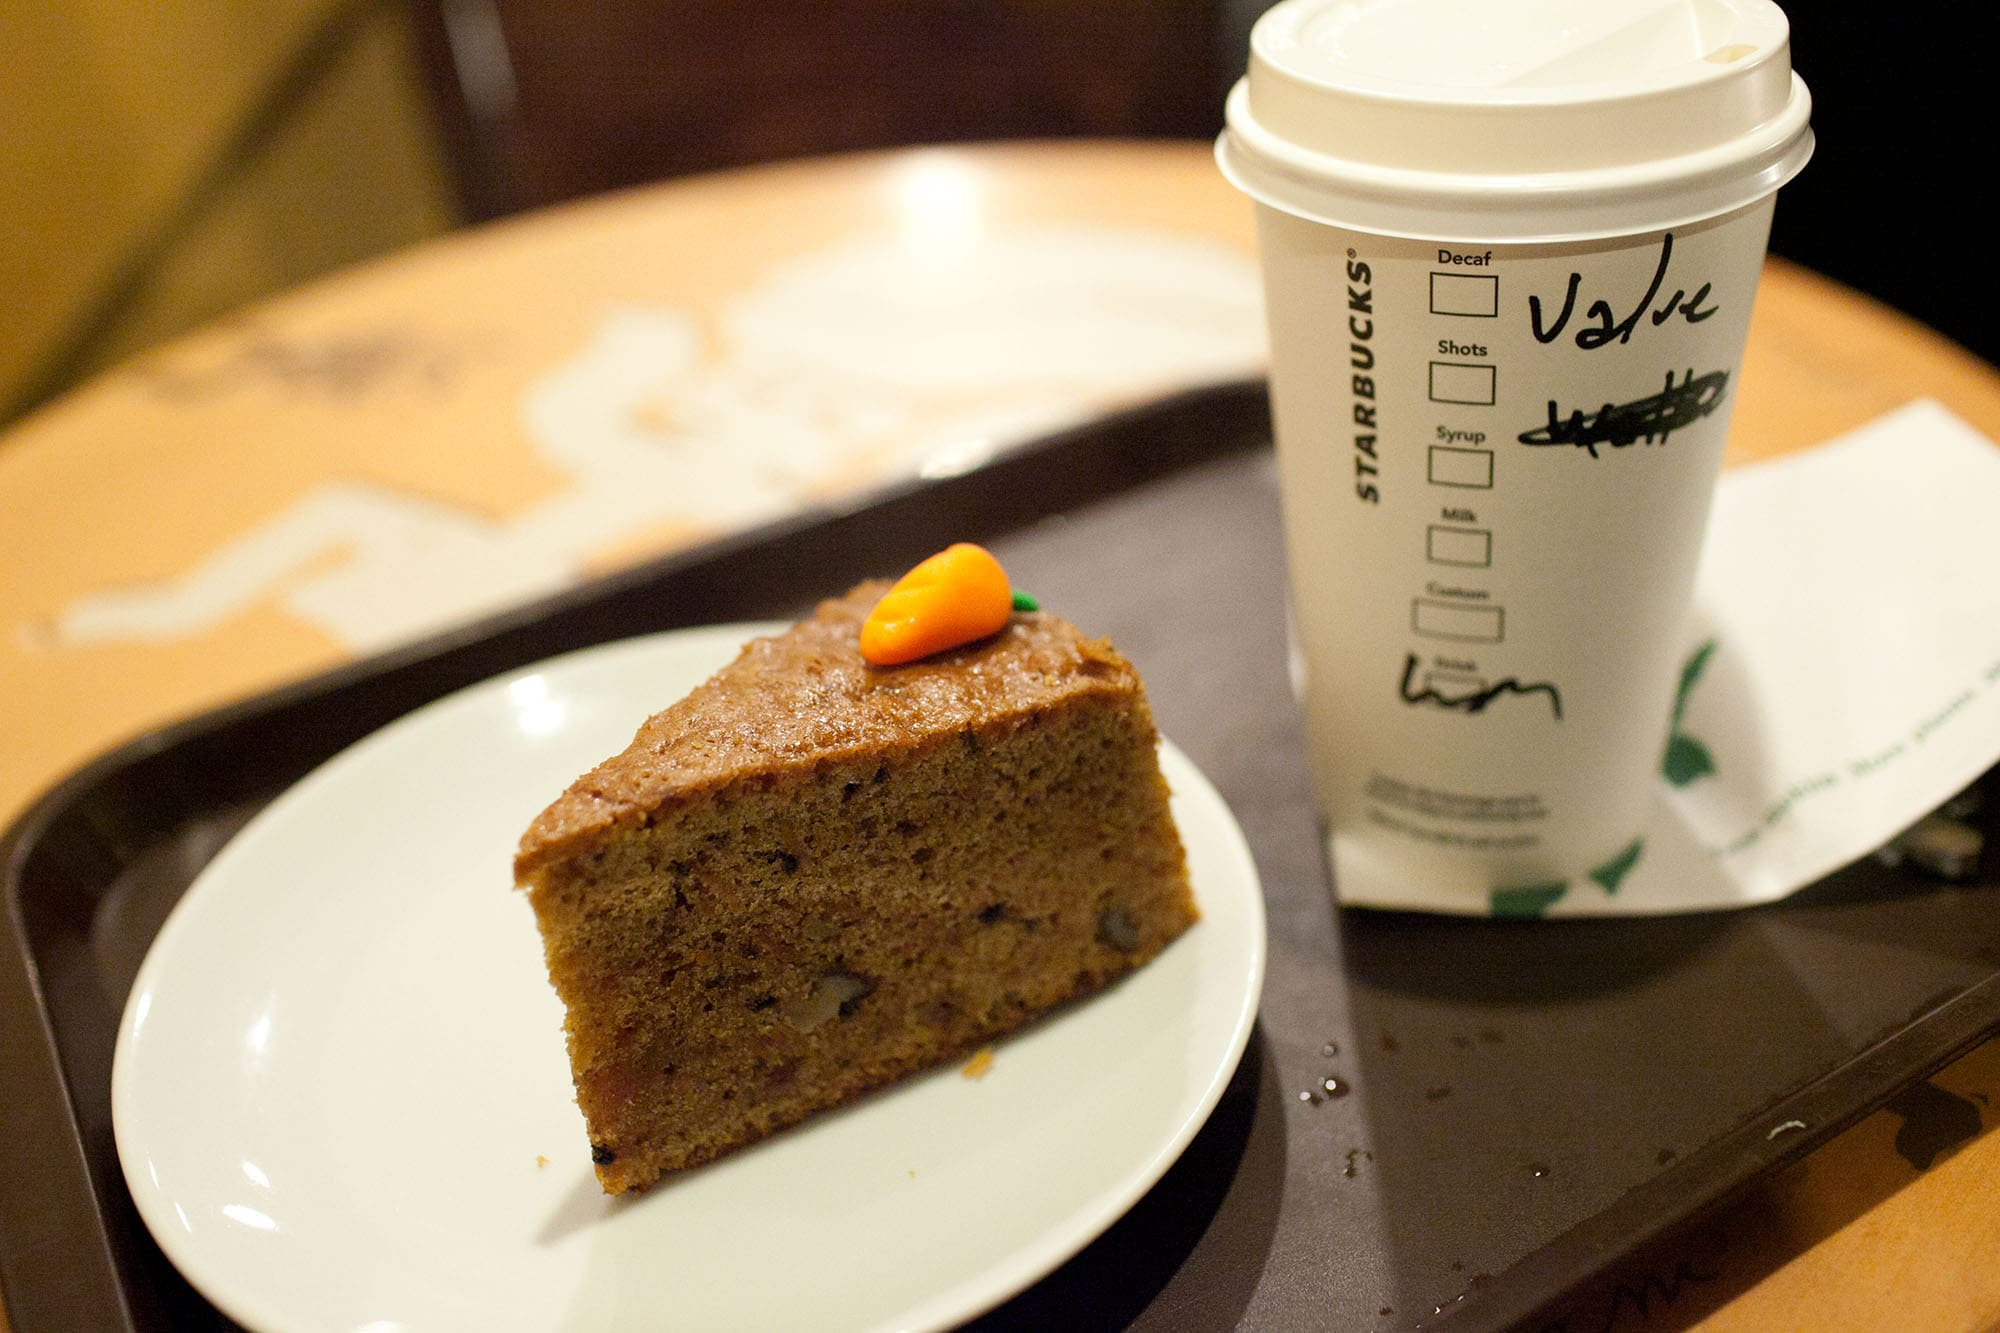 Carrot cake at Starbucks in Istanbul, Turkey